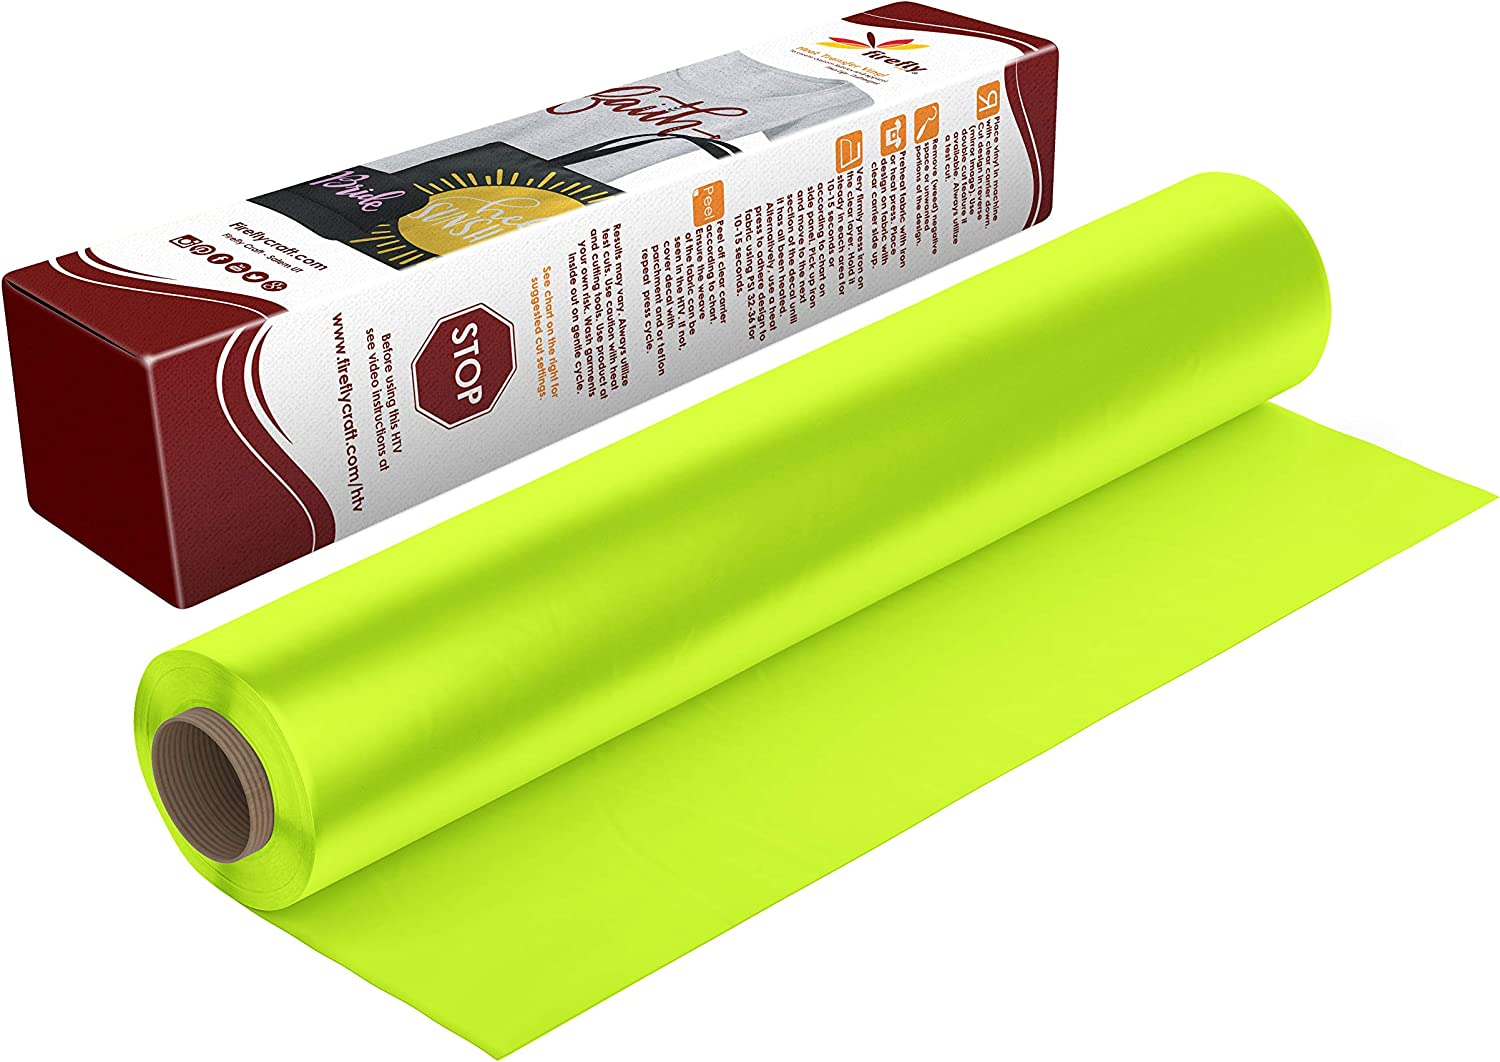 Firefly Craft Neon Yellow Heat Transfer Vinyl | Fluorescent Yellow HTV Vinyl | Bright Yellow Iron On Vinyl for Cricut and Silhouette | 5 Feet by 12.25 Roll | Heat Press Vinyl for Shirts: Arts, Crafts & Sewing